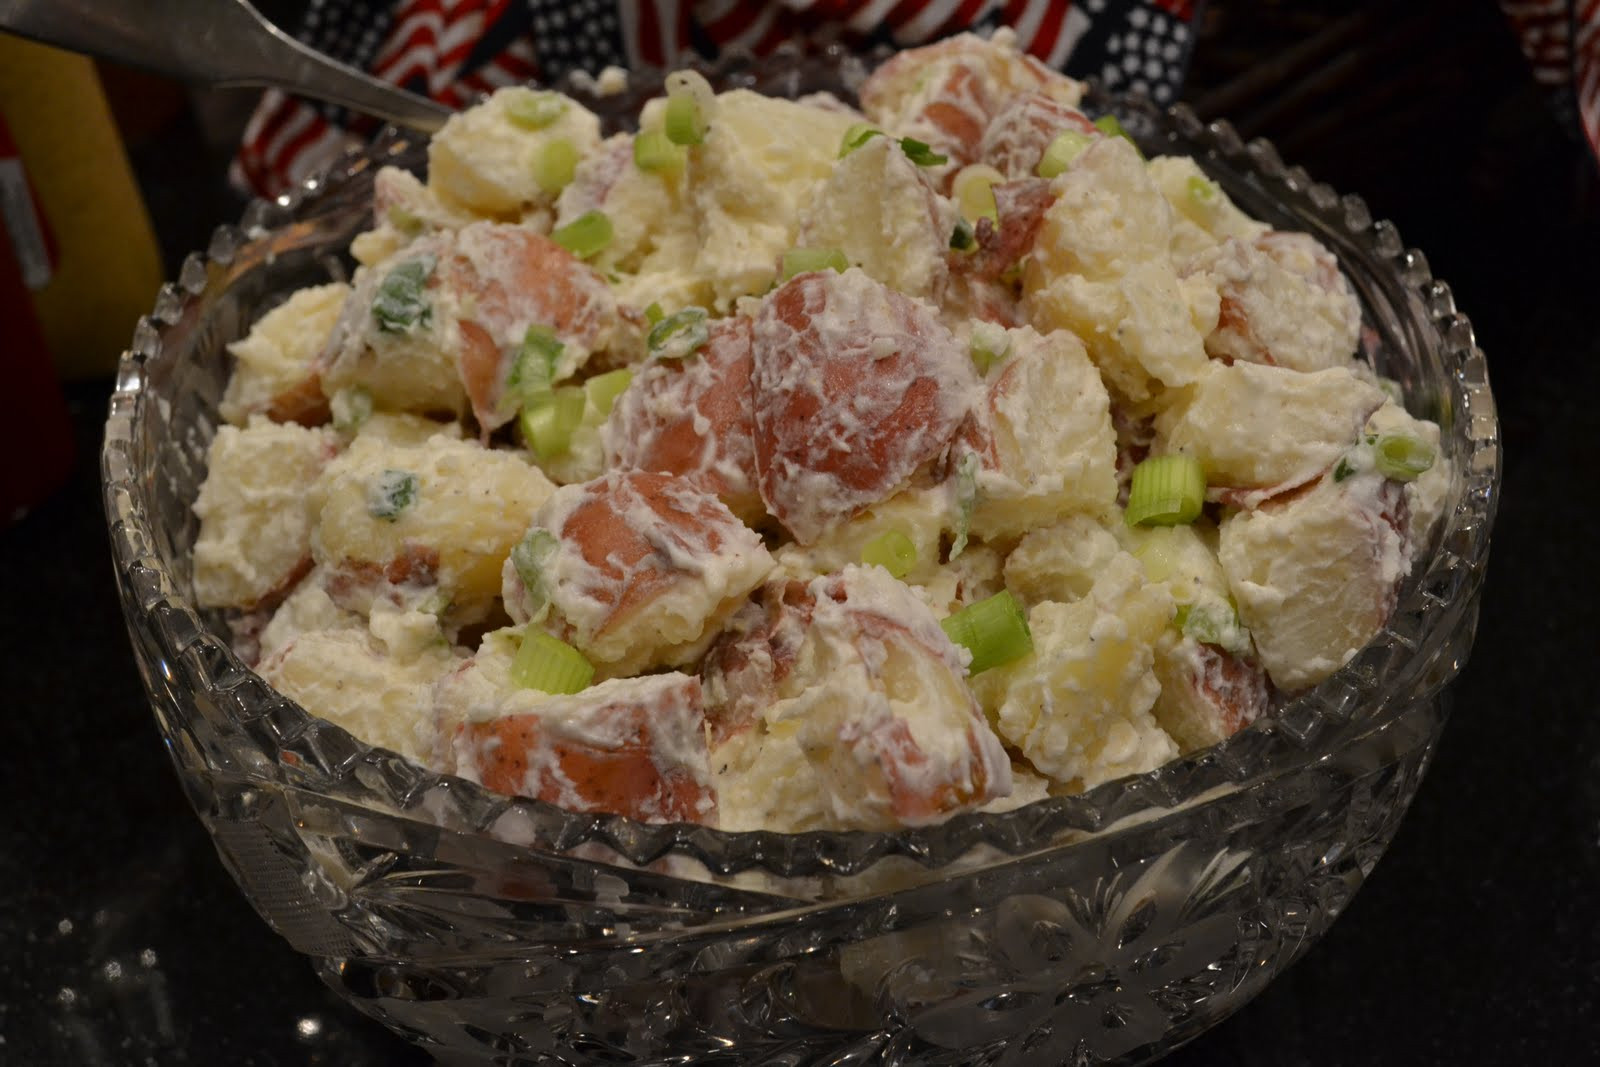 Potato Salad Without Eggs  Non egg red potato salad LaForce Be With You